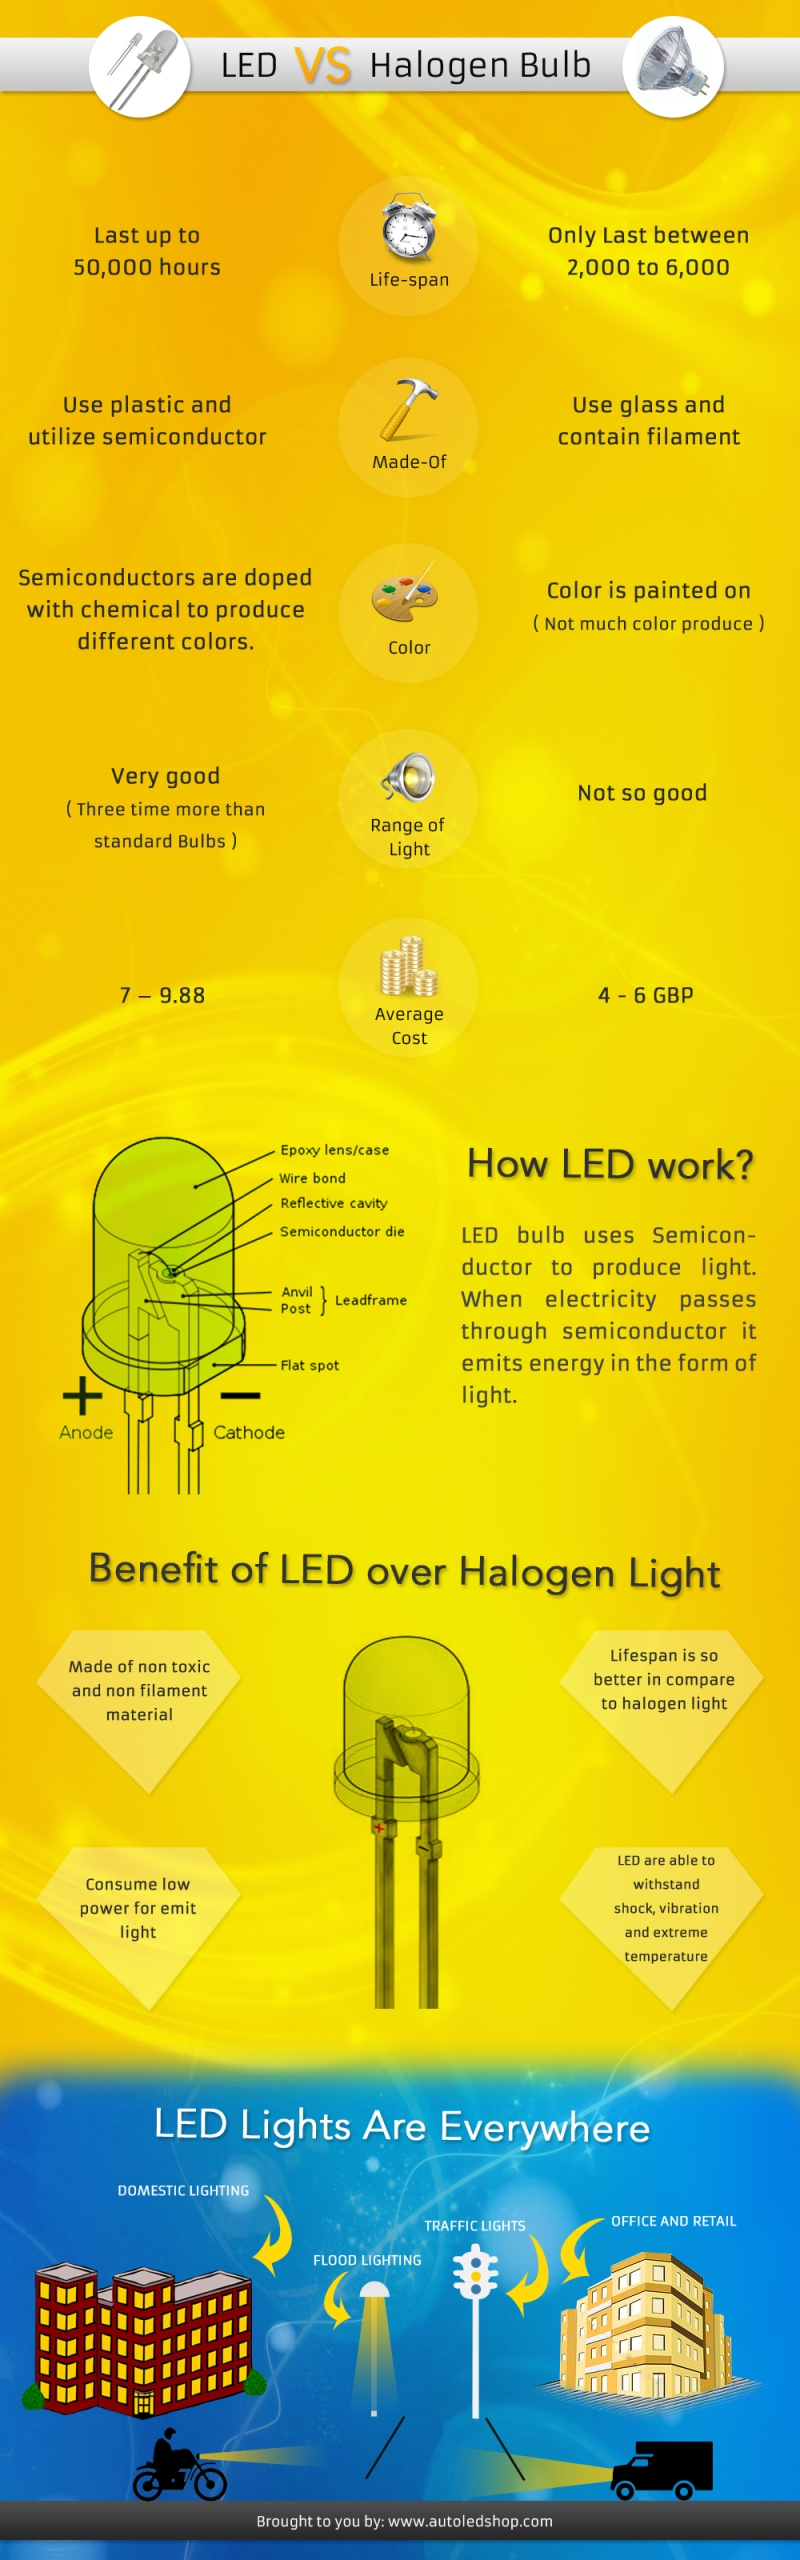 LED Vs Halogen Bulb